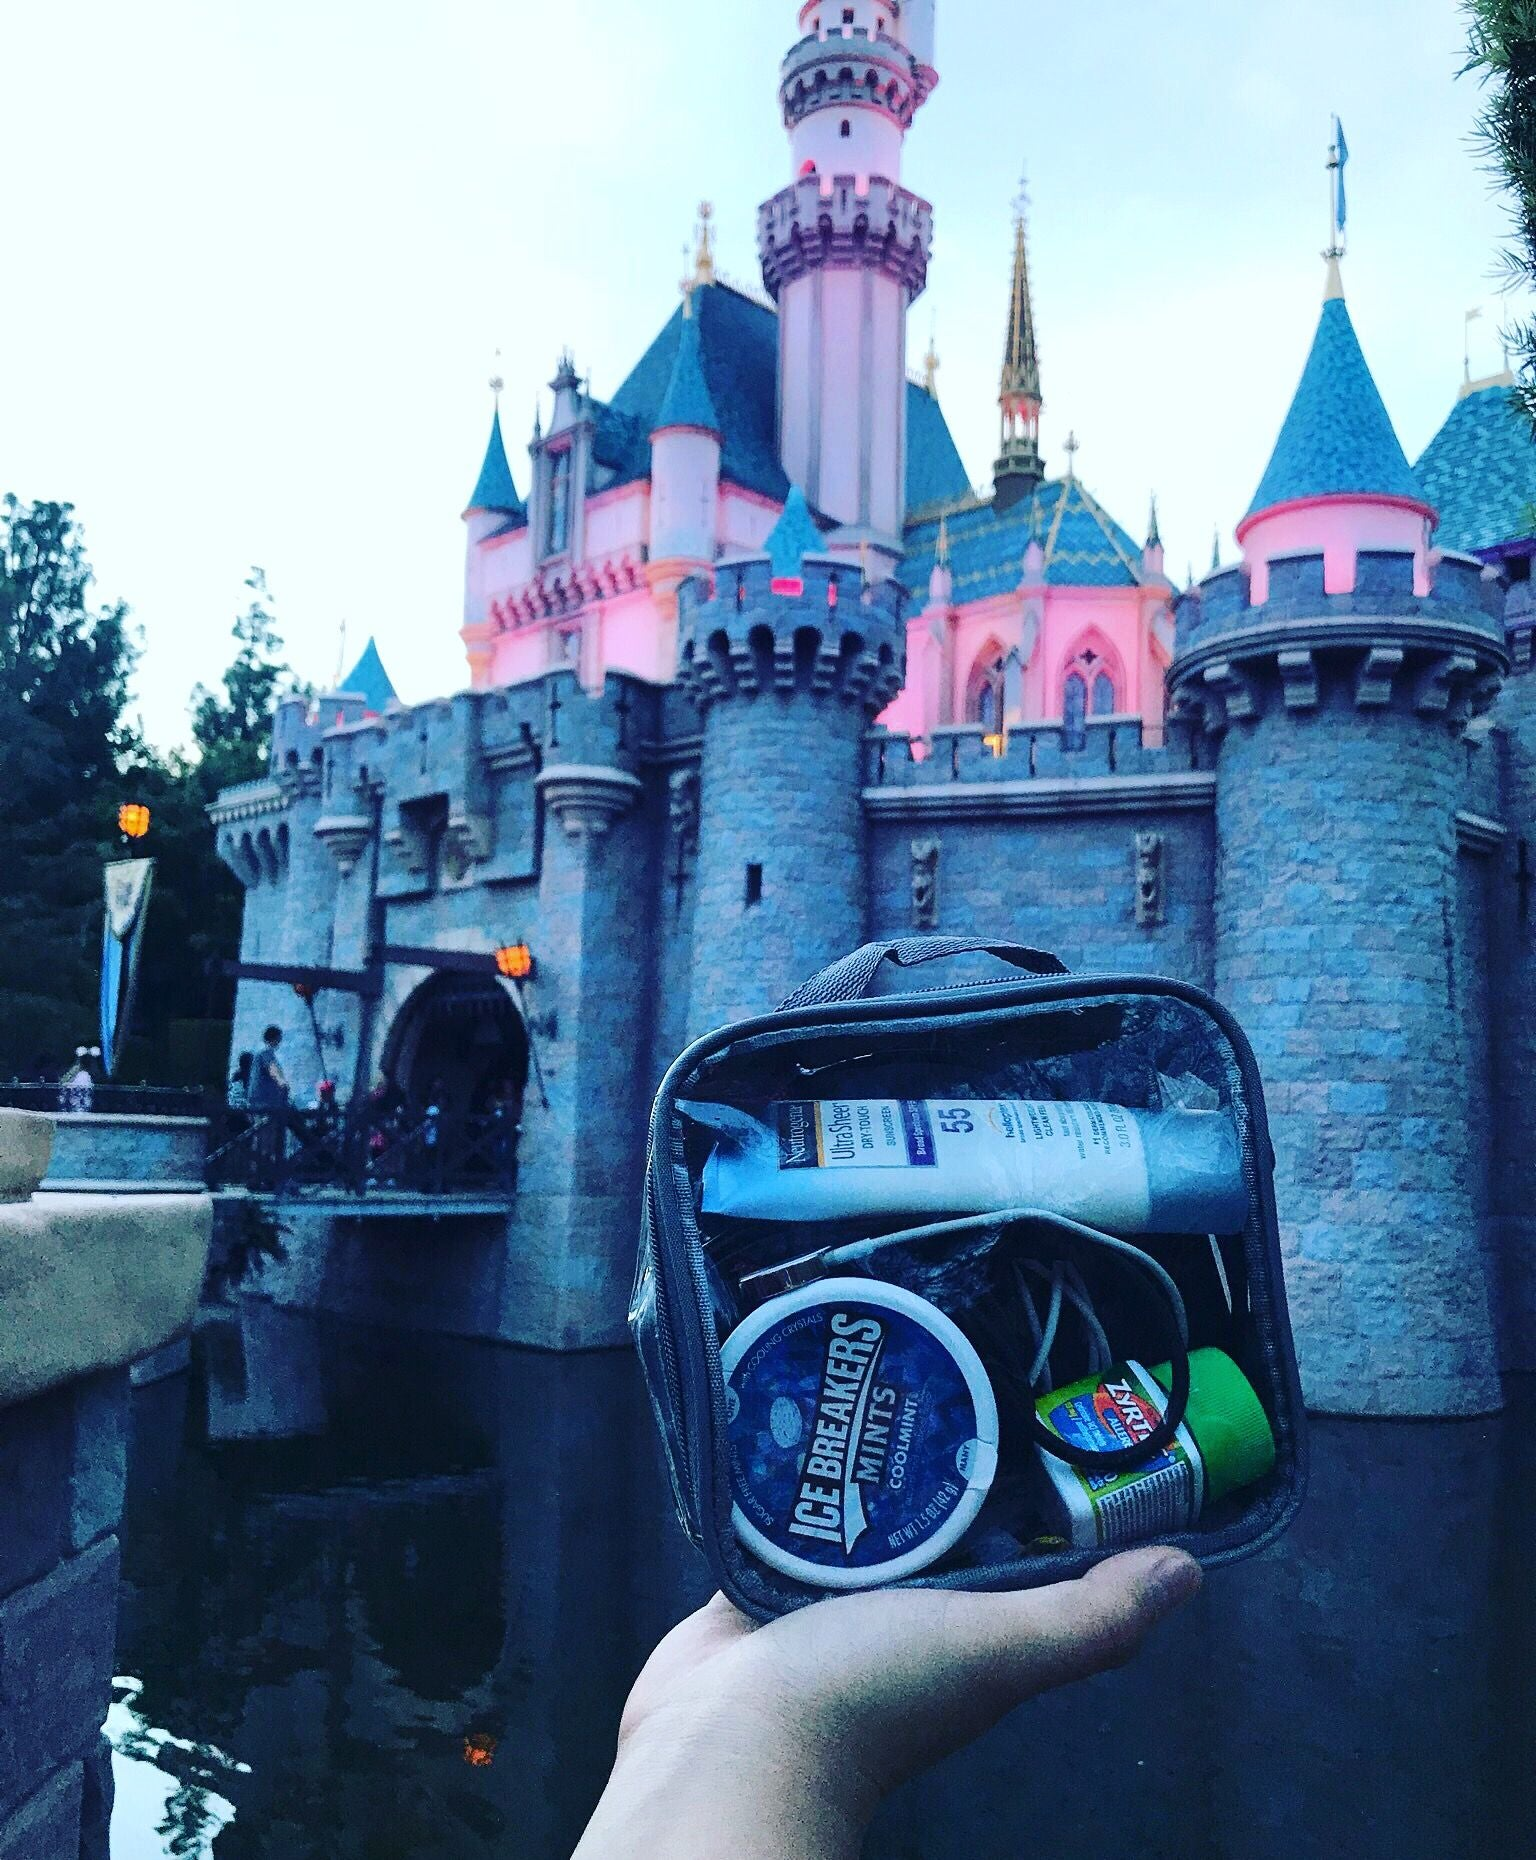 Extra small cube in Disneyland